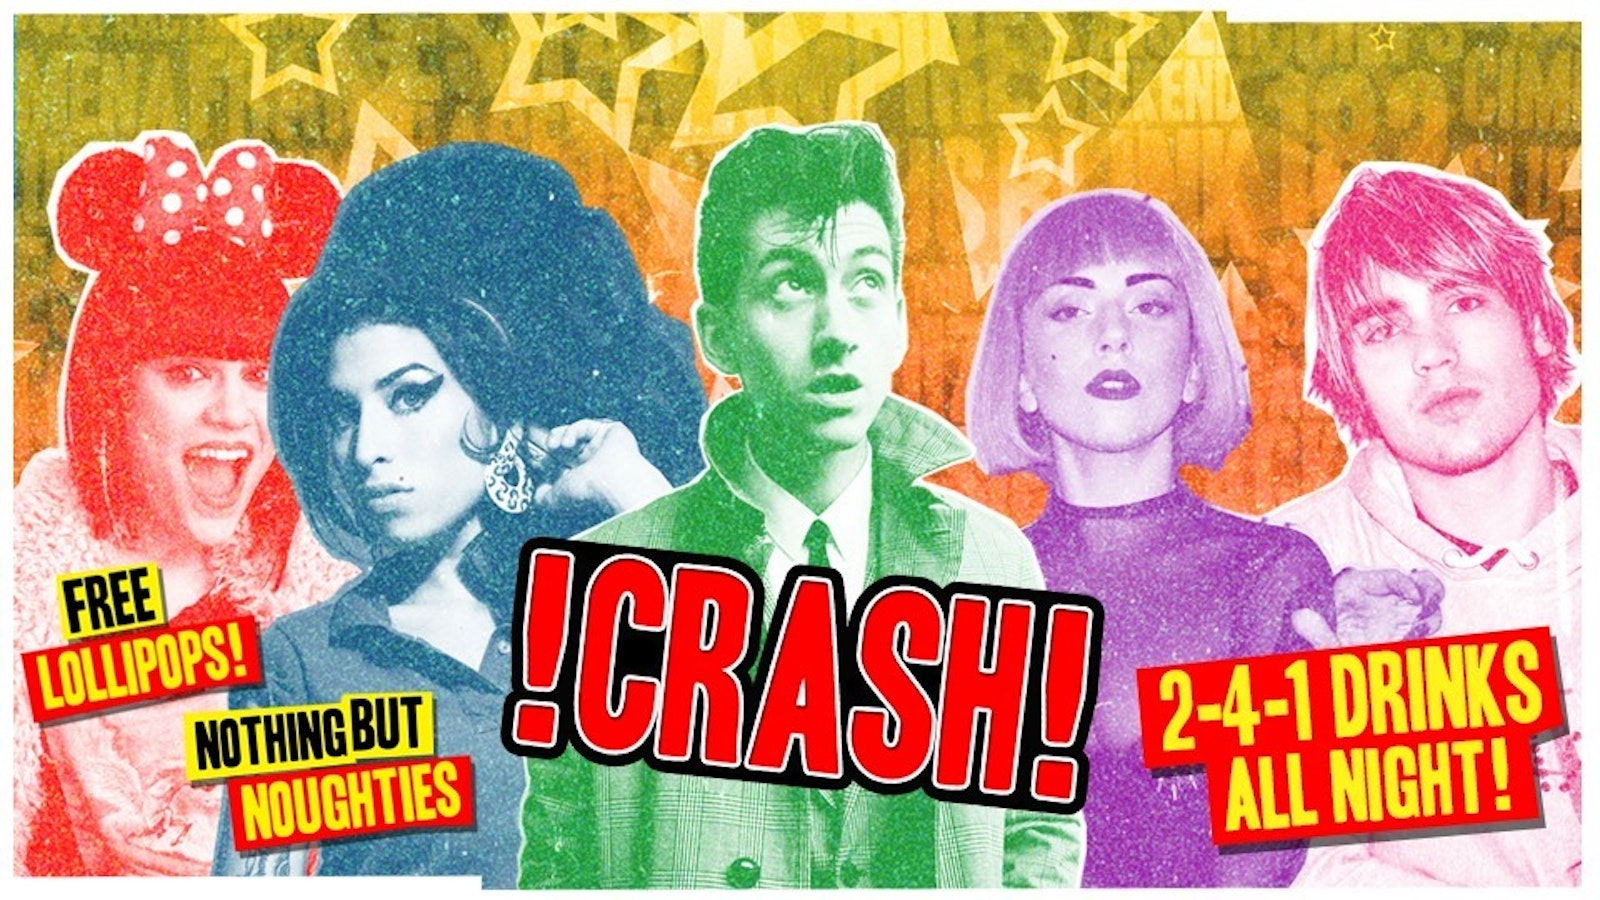 CRASH – Nothing But Noughties! 2-4-1 Drinks All Night!